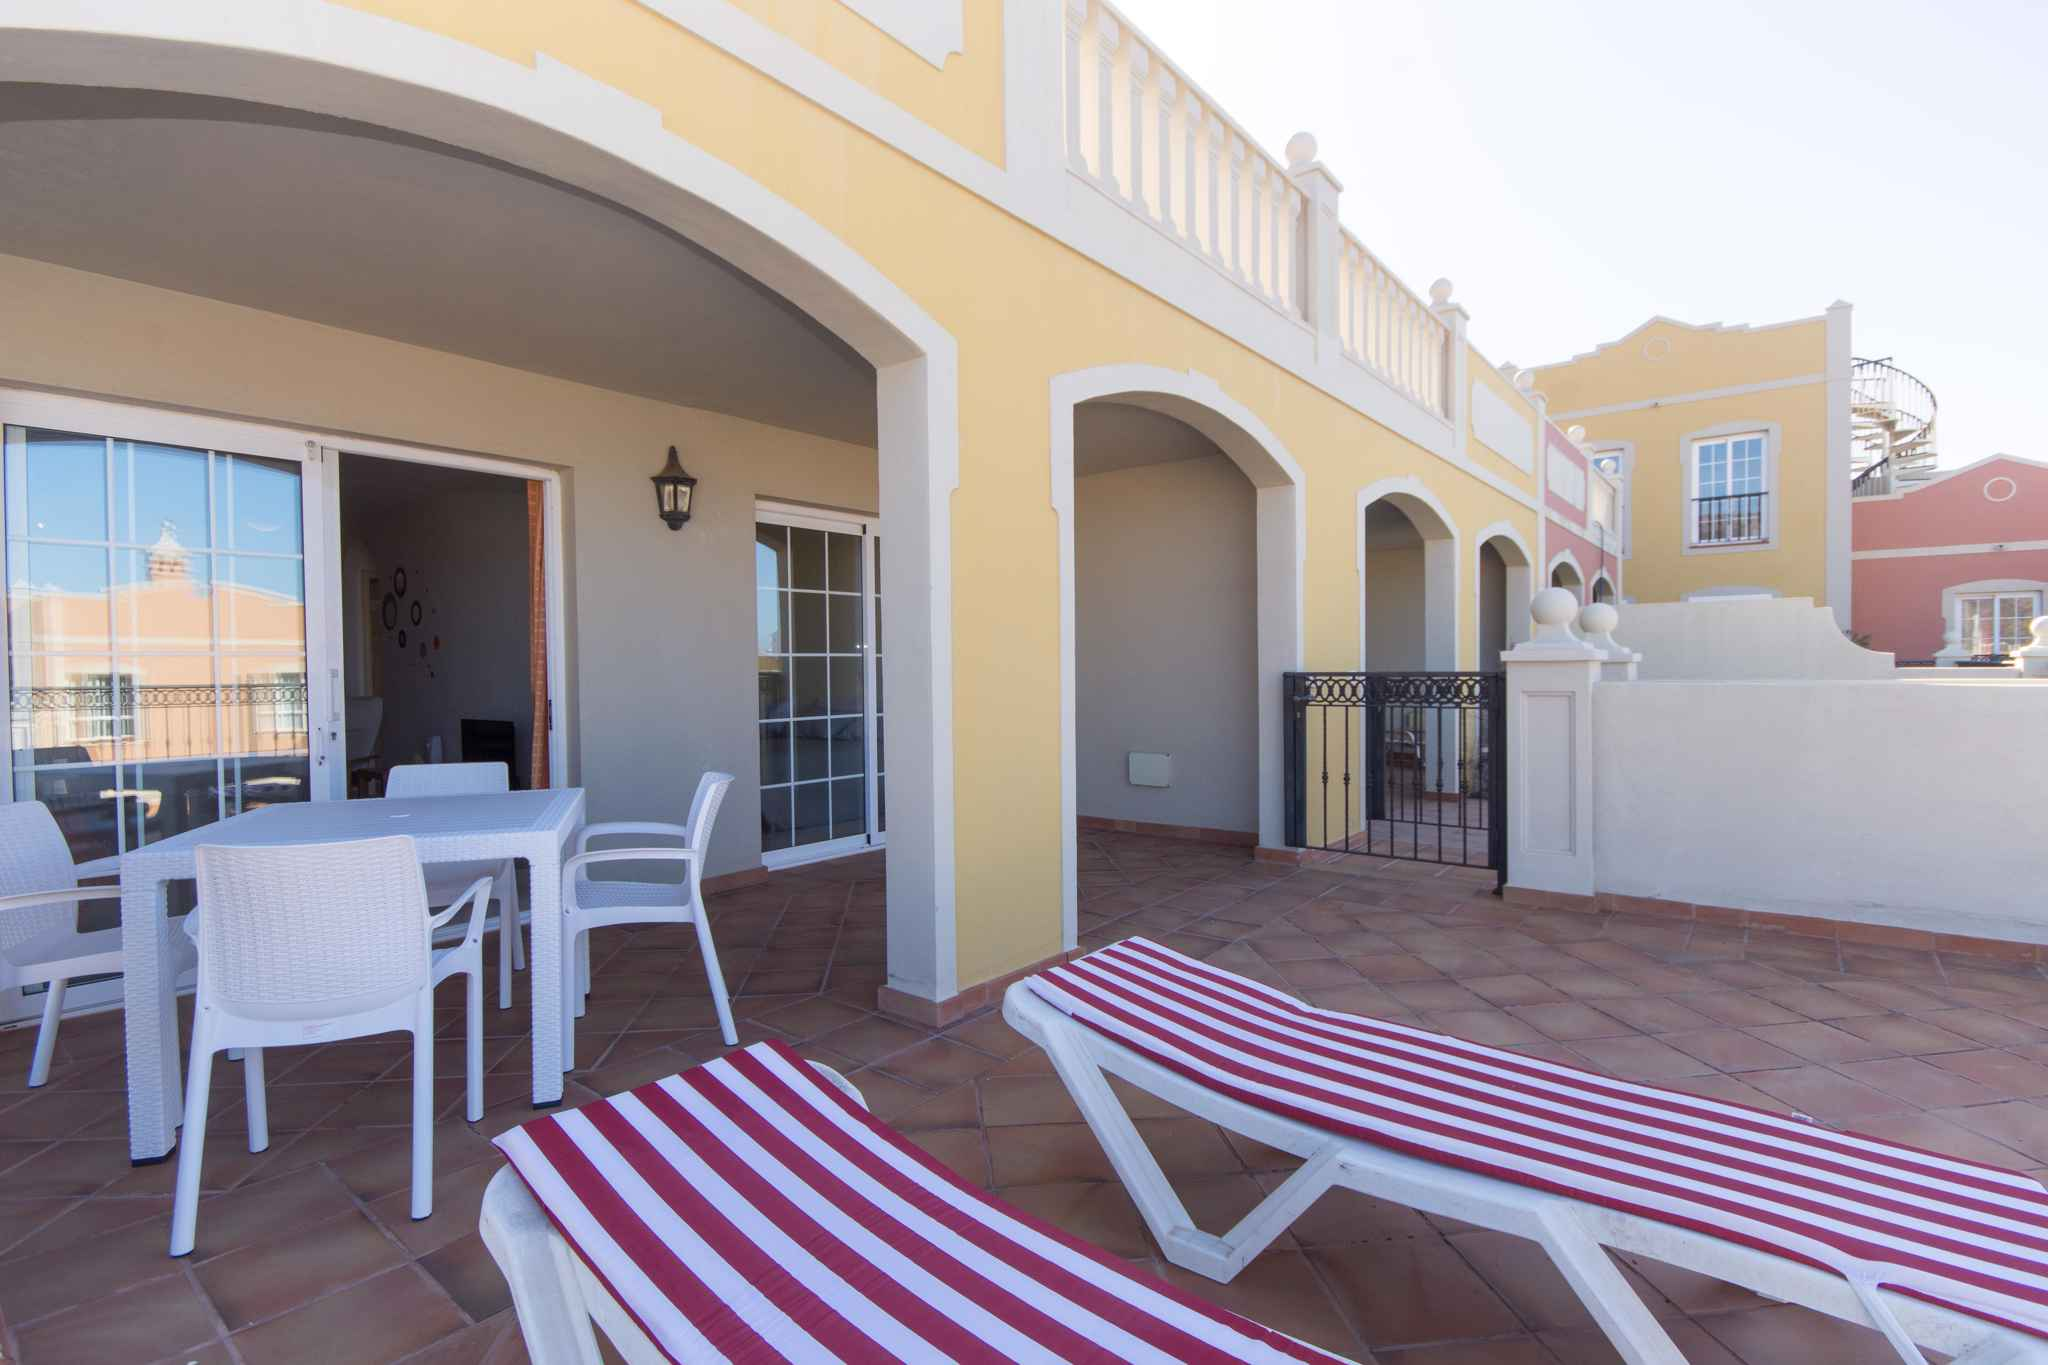 Holiday apartment mit Pool in Ferienanlage (2377552), Palm-Mar, Tenerife, Canary Islands, Spain, picture 5